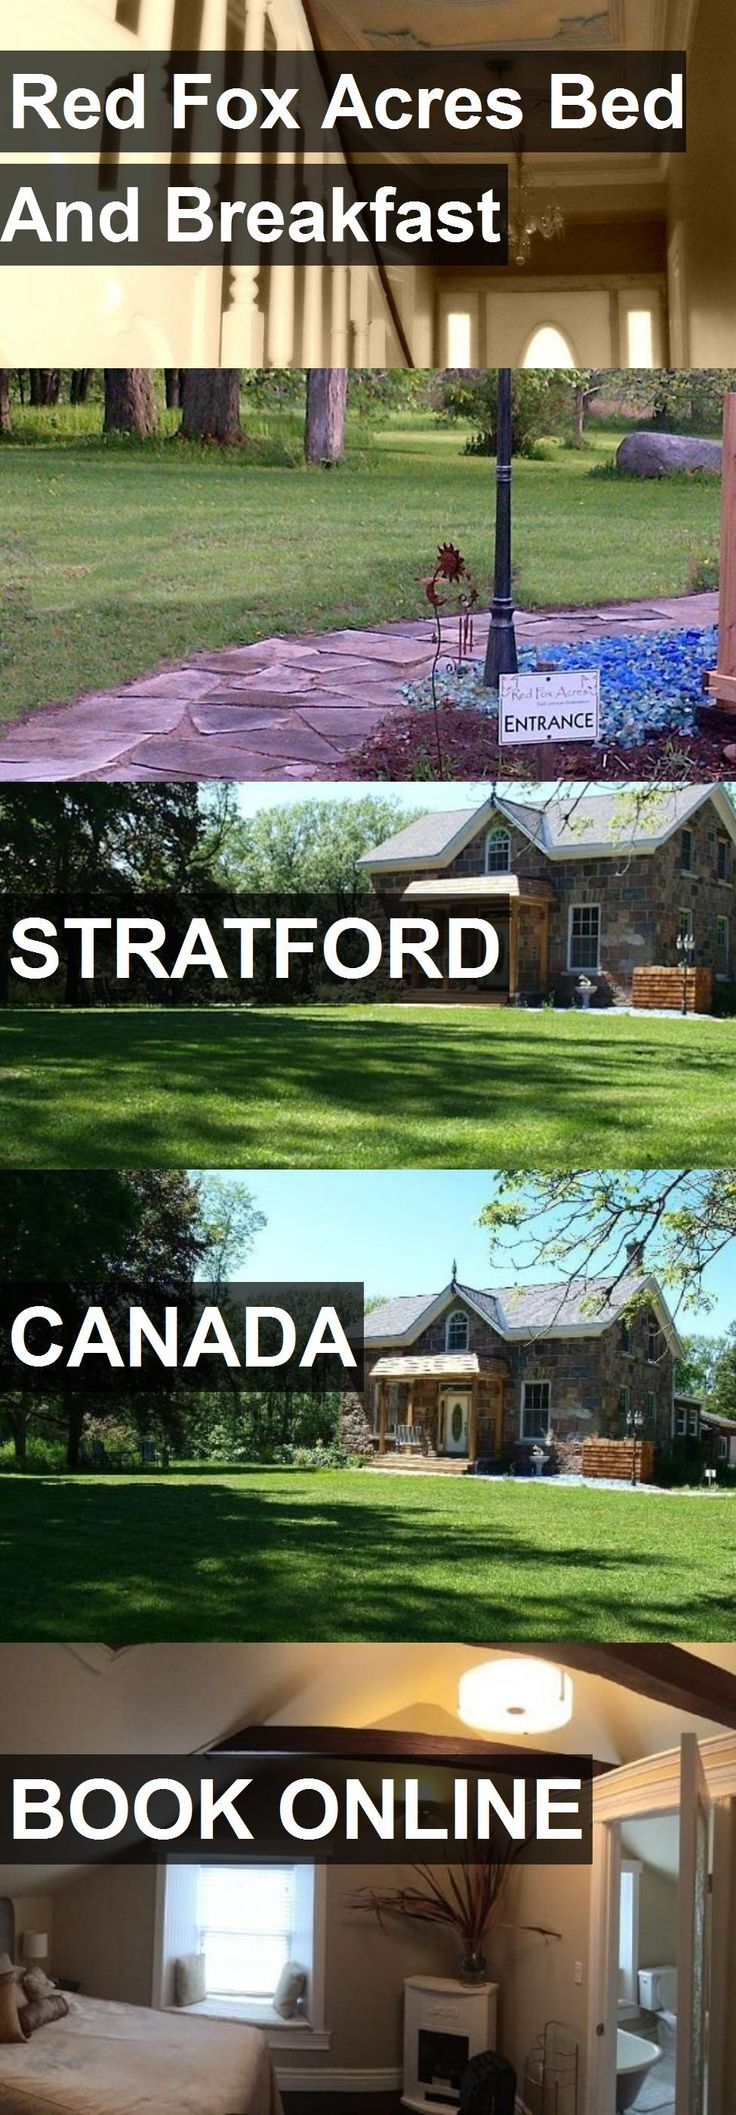 Hotel Red Fox Acres Bed And Breakfast in Stratford, Canada. For more information, photos, reviews and best prices please follow the link. #Canada #Stratford #RedFoxAcresBedAndBreakfast #hotel #travel #vacation